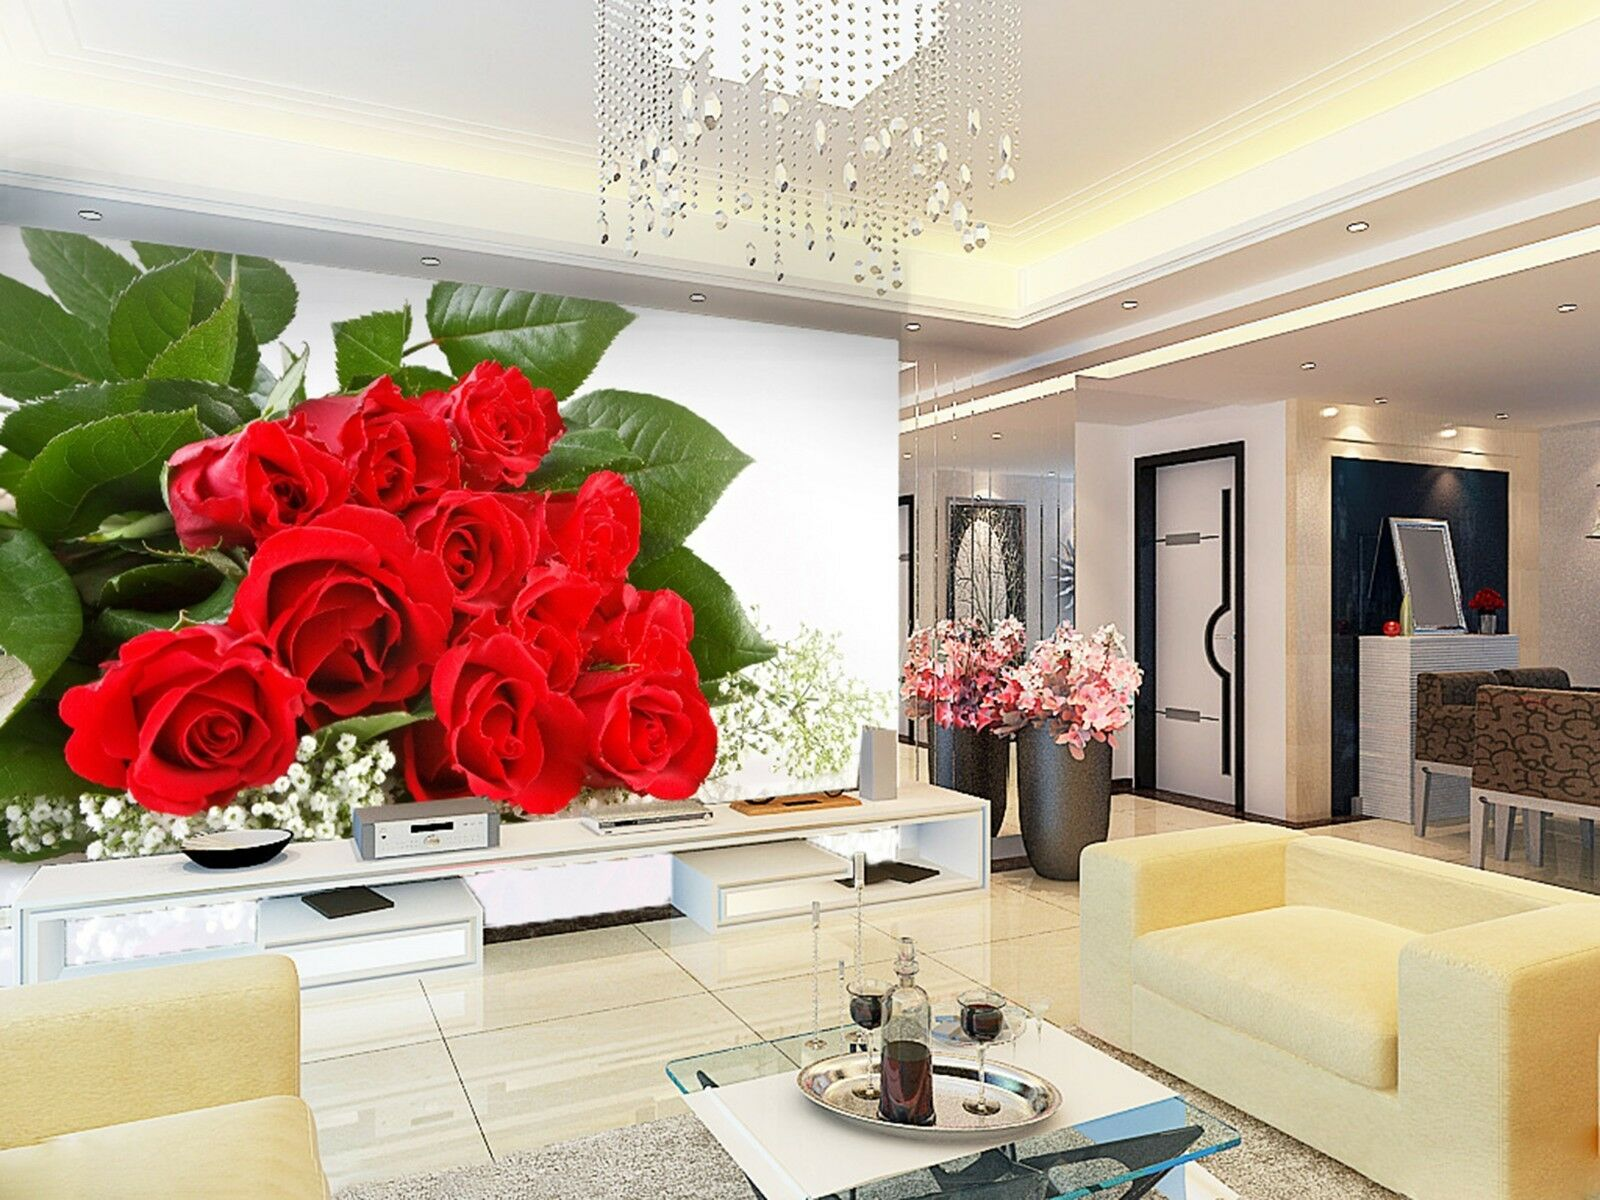 3D ROT rose bouquet Wall Paper Print Decal Wall Deco Indoor wall Mural